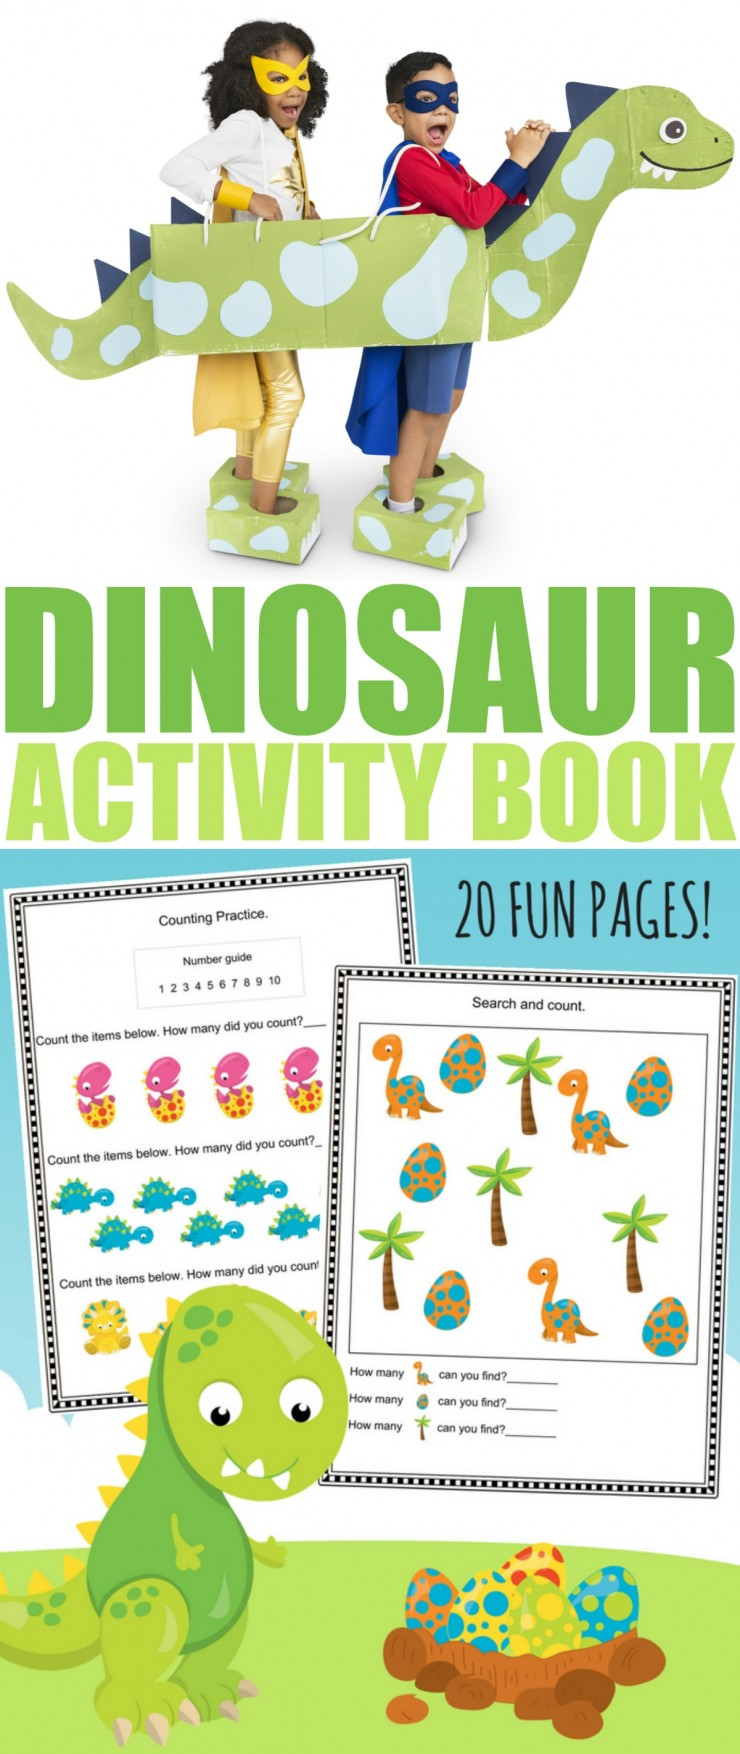 20 Fun Pages of printable dinosaur themed worksheets (for Pre-Kindergarten to Grade 1 aged kids!) You are going to love this FREE printable Dinosaur Activity Book for kids.